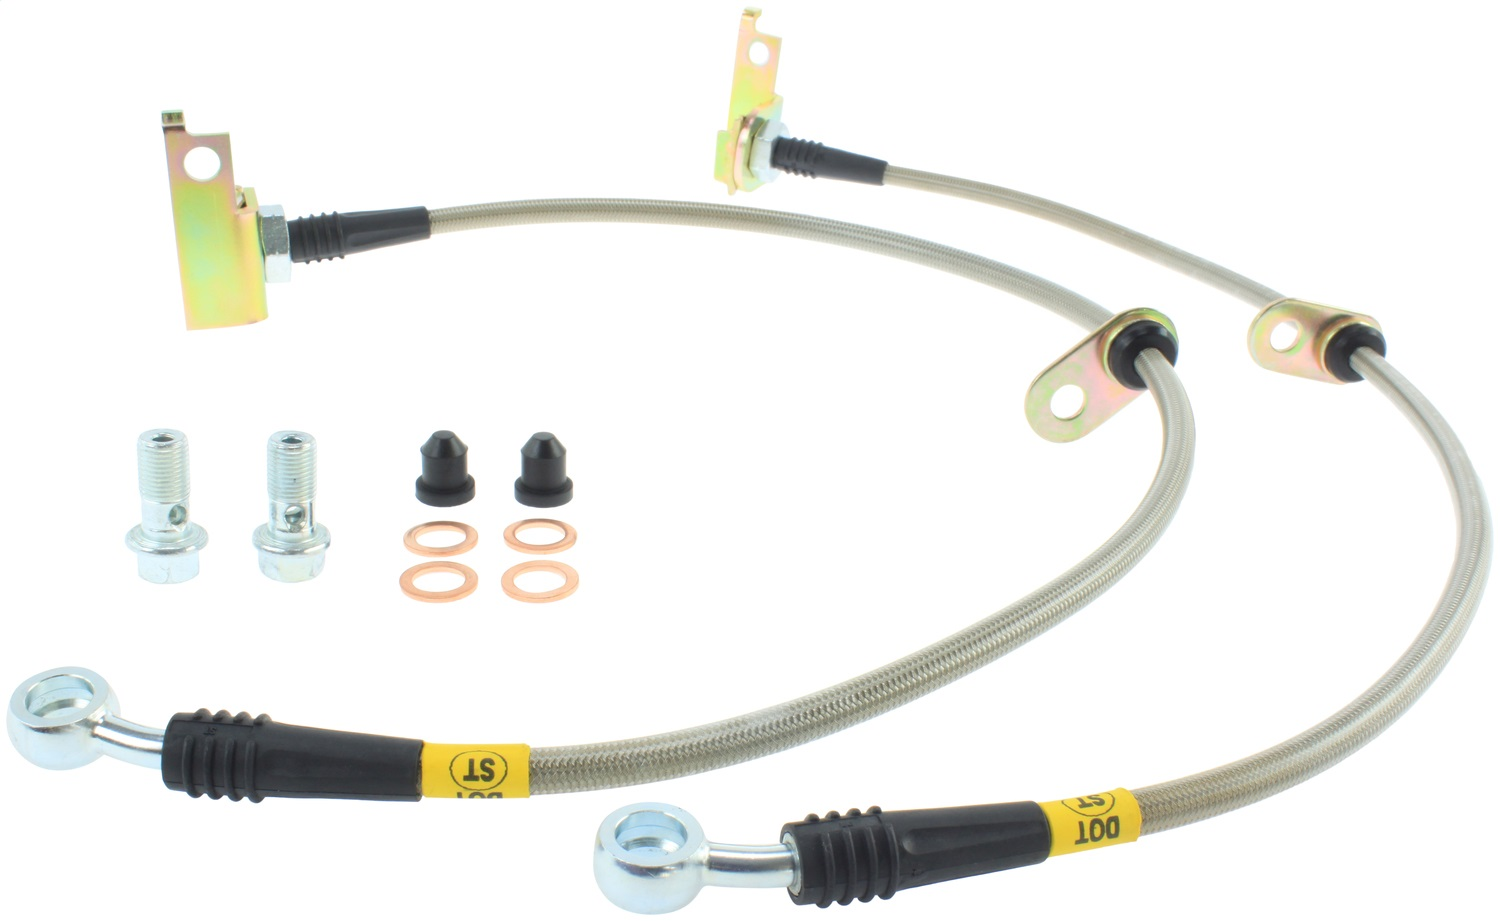 StopTech 950.40018 Stainless Steel Braided Brake Hose Kit Fits 09-15 CR-Z Fit